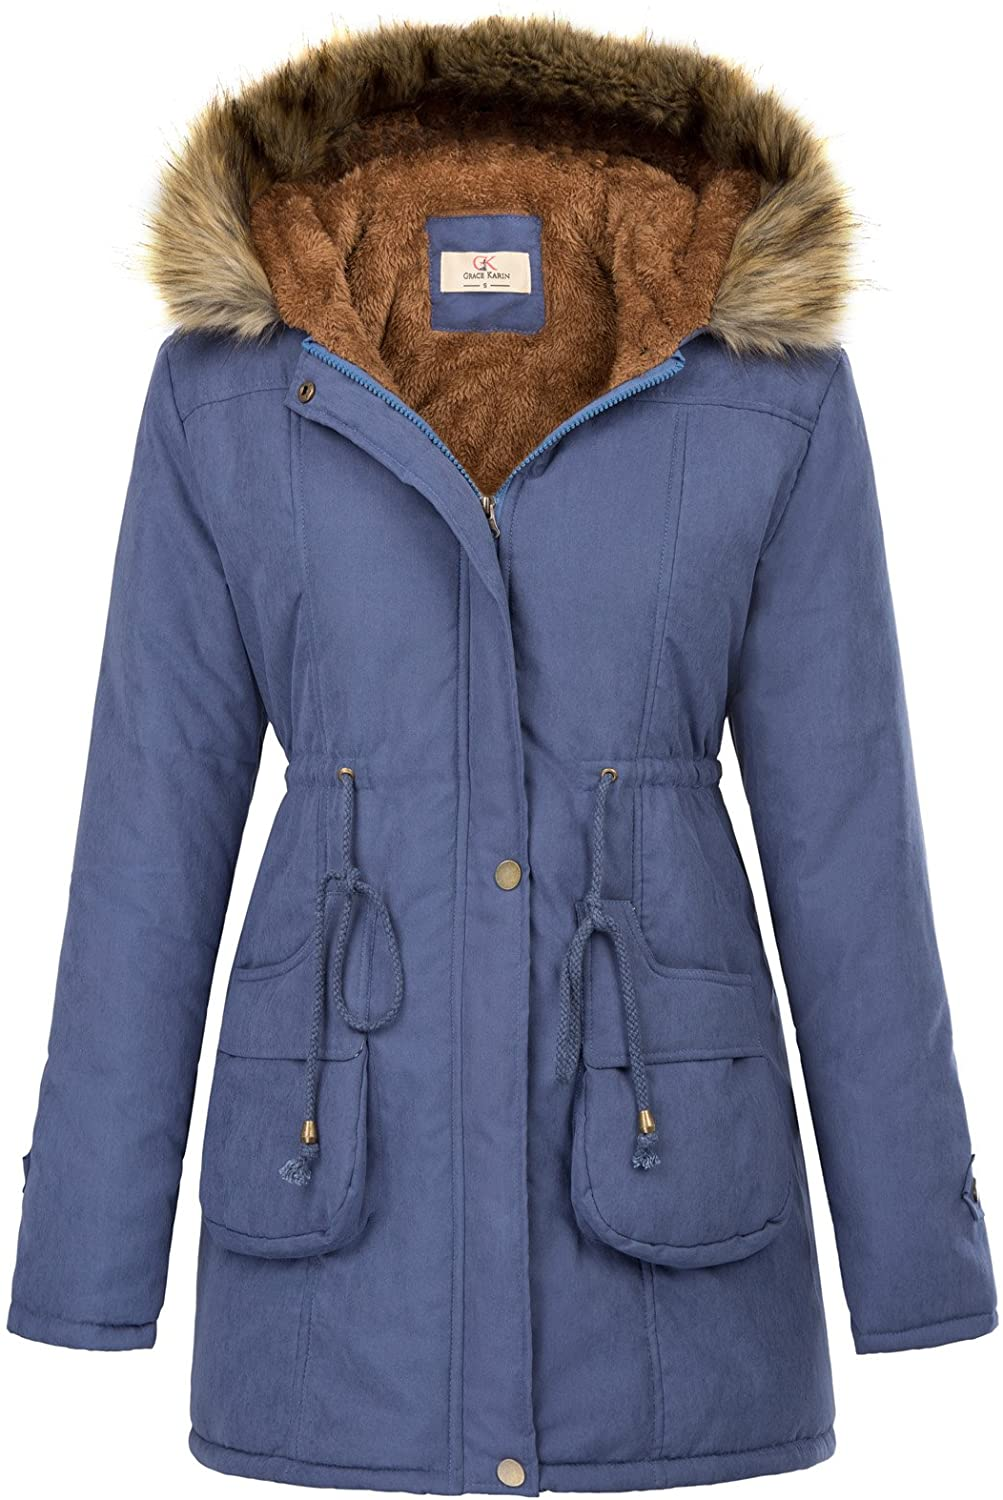 GRACE KARIN Womens Hooded Warm Winter Thicken Fleece Lined Parkas Long Coats Coats, Jackets & Vests Clothing, Shoes & Jewelry ilsr.org